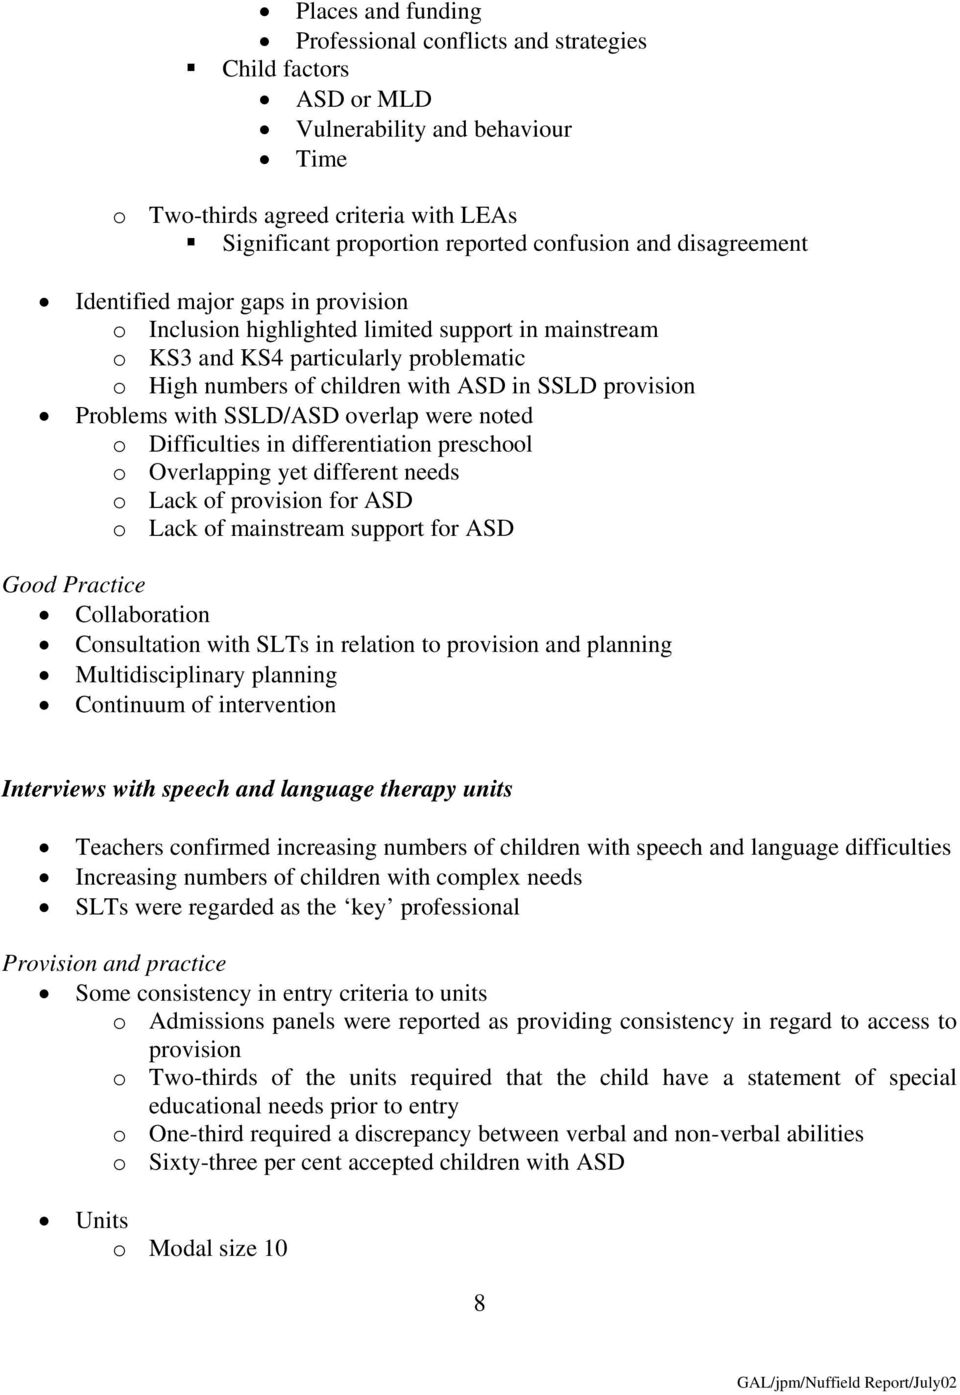 Problems with SSLD/ASD overlap were noted o Difficulties in differentiation preschool o Overlapping yet different needs o Lack of provision for ASD o Lack of mainstream support for ASD Good Practice